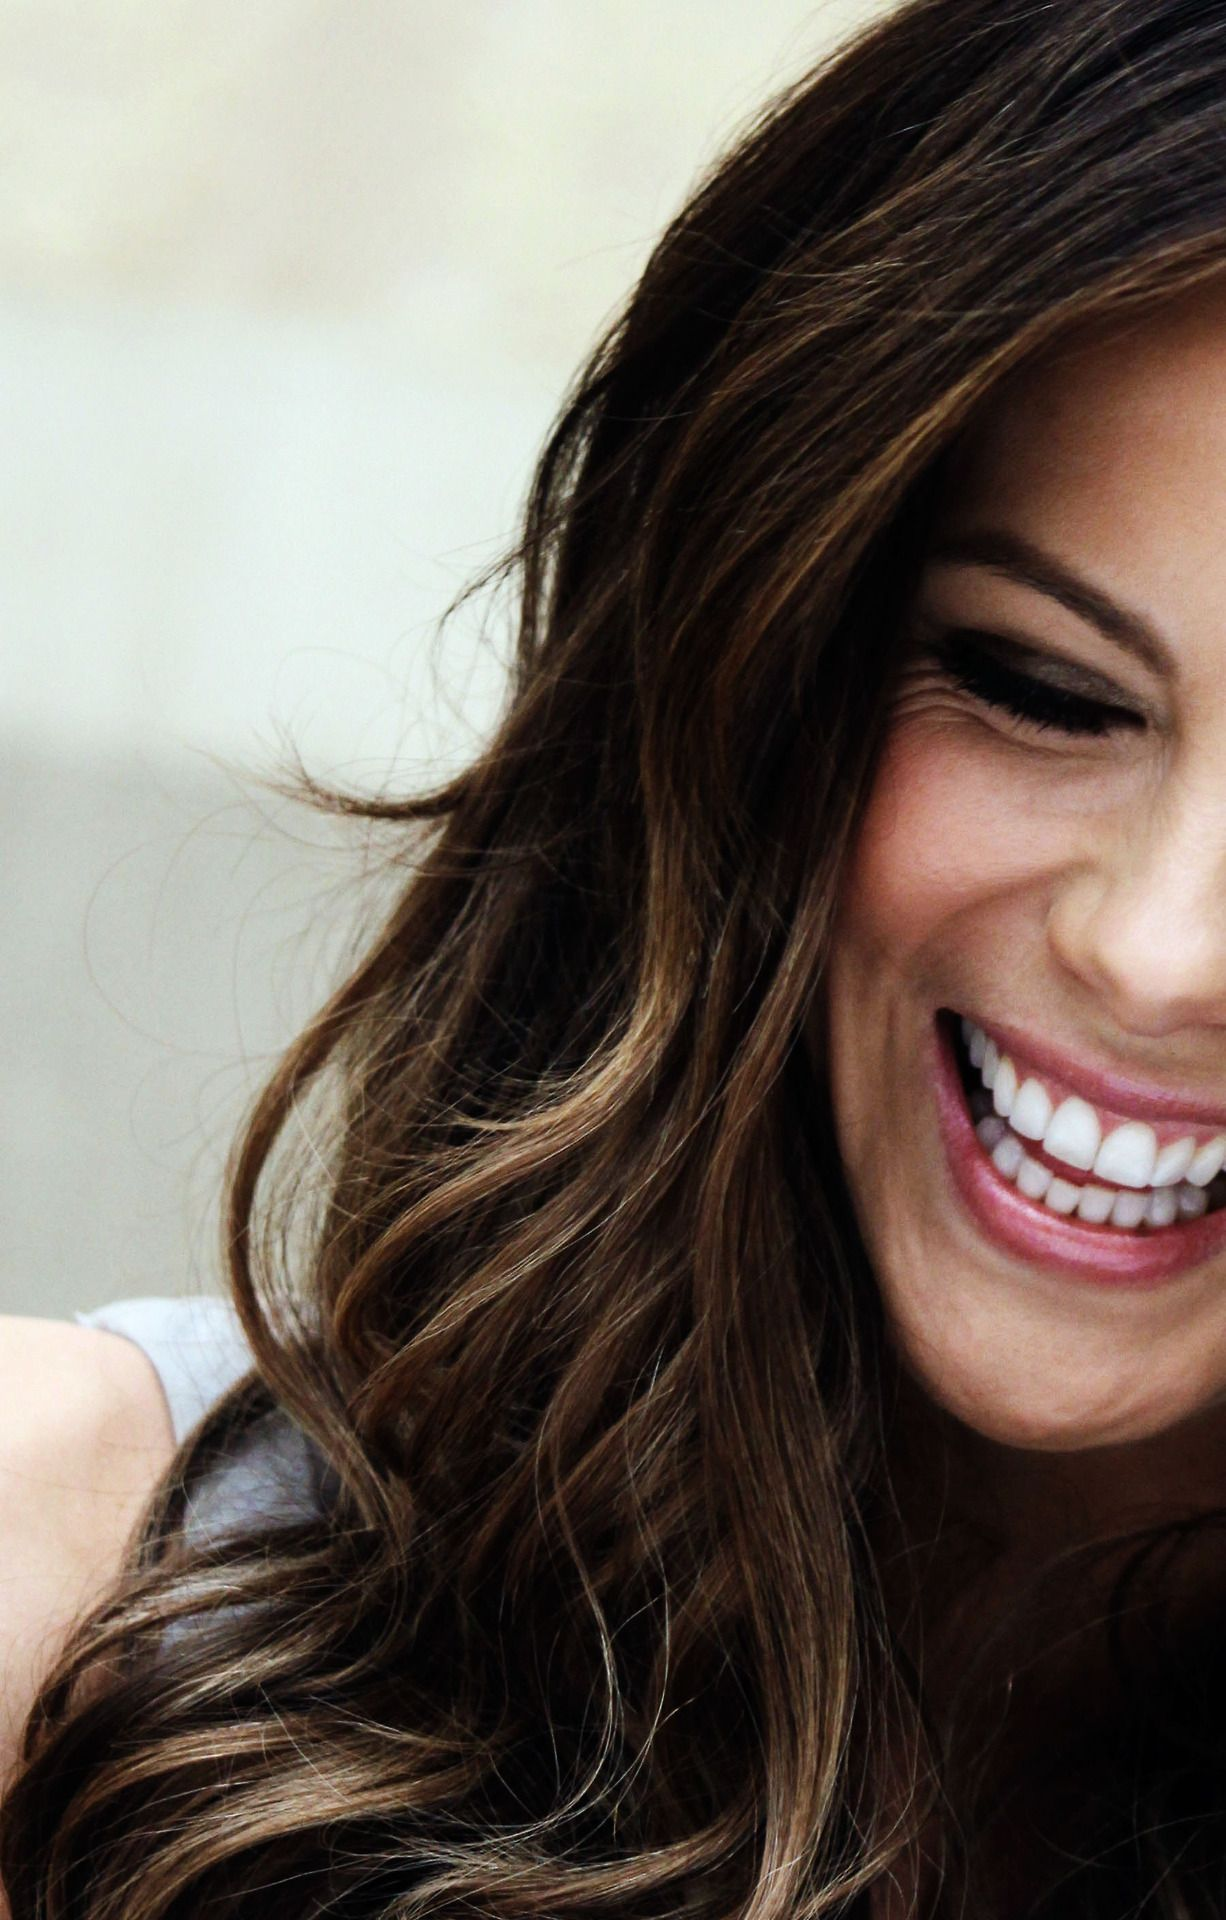 Look At That Beautiful Smile : beautiful, smile, Beckinsale, Beckinsale,, Kate,, Beauty